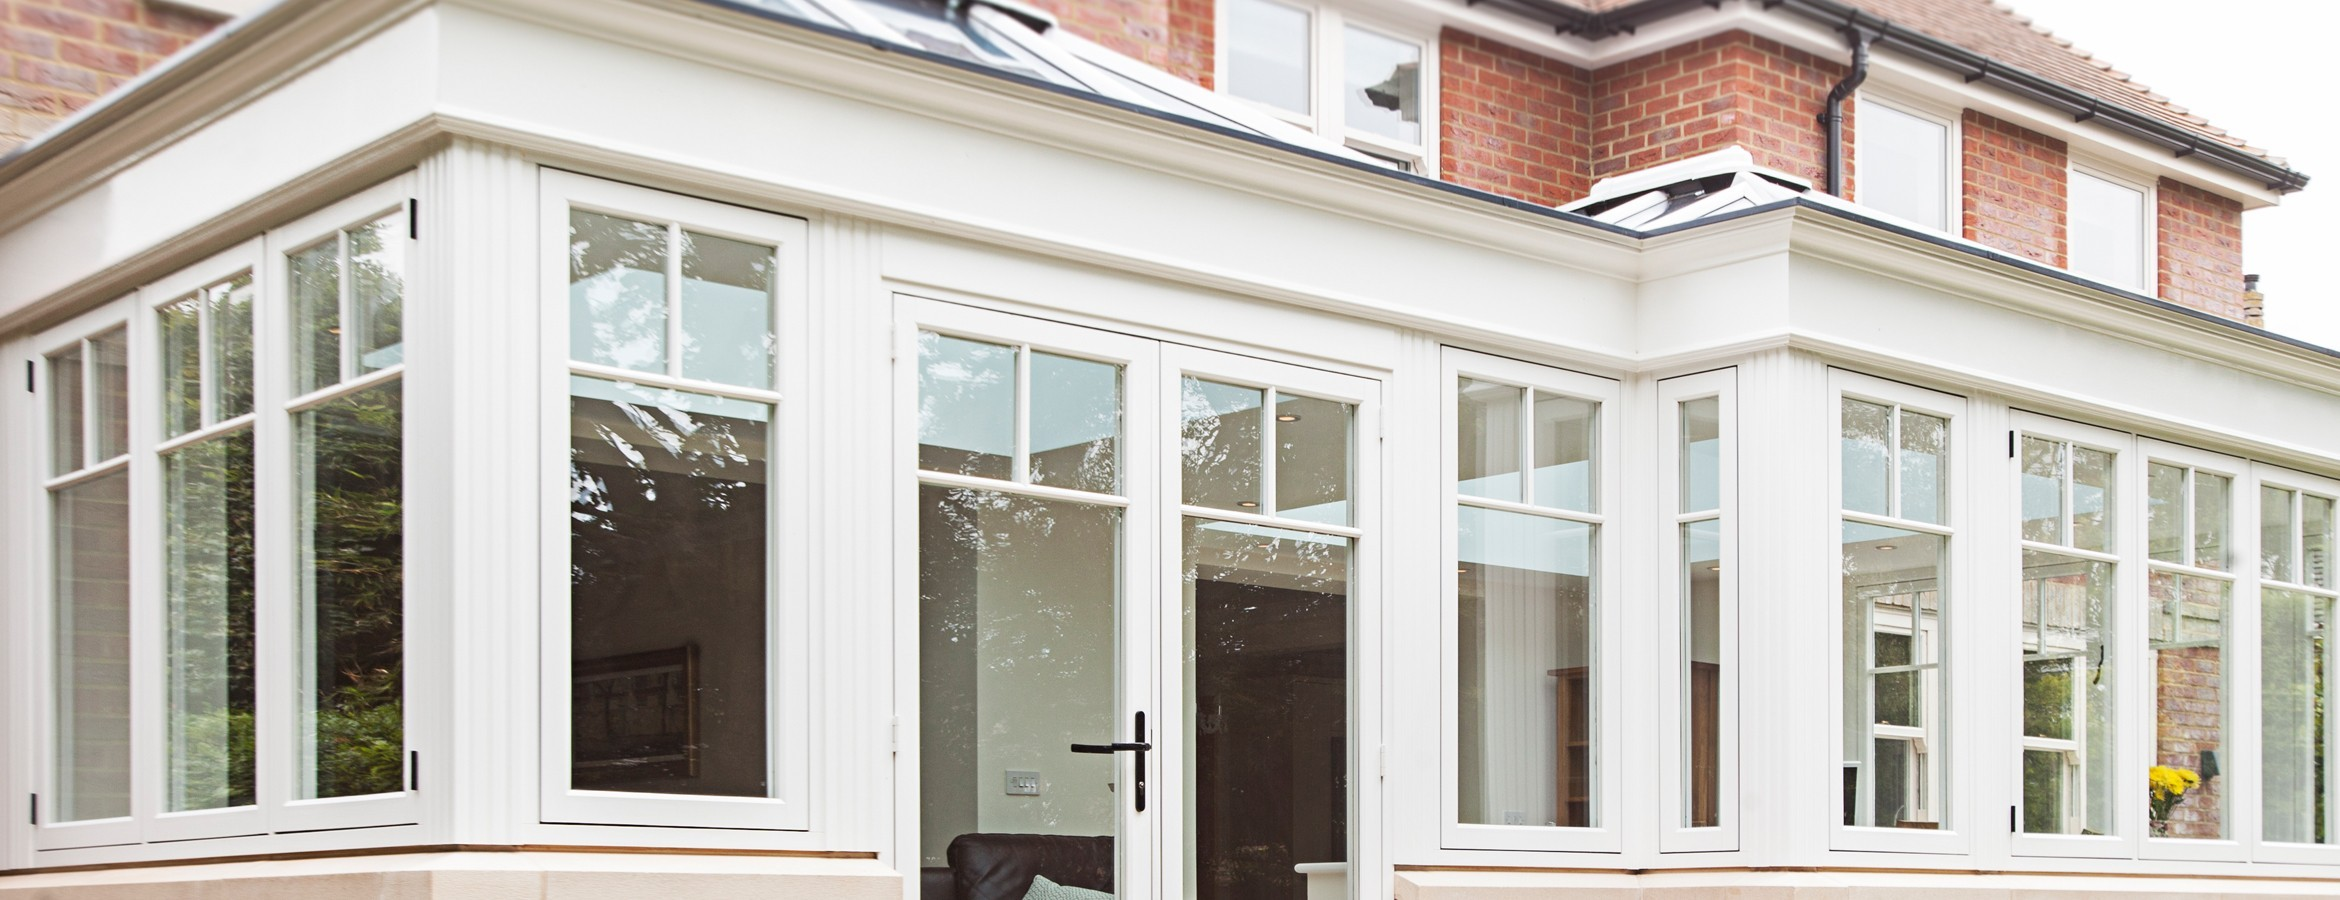 UPVC Windows installed by Crittall Installations in Kent